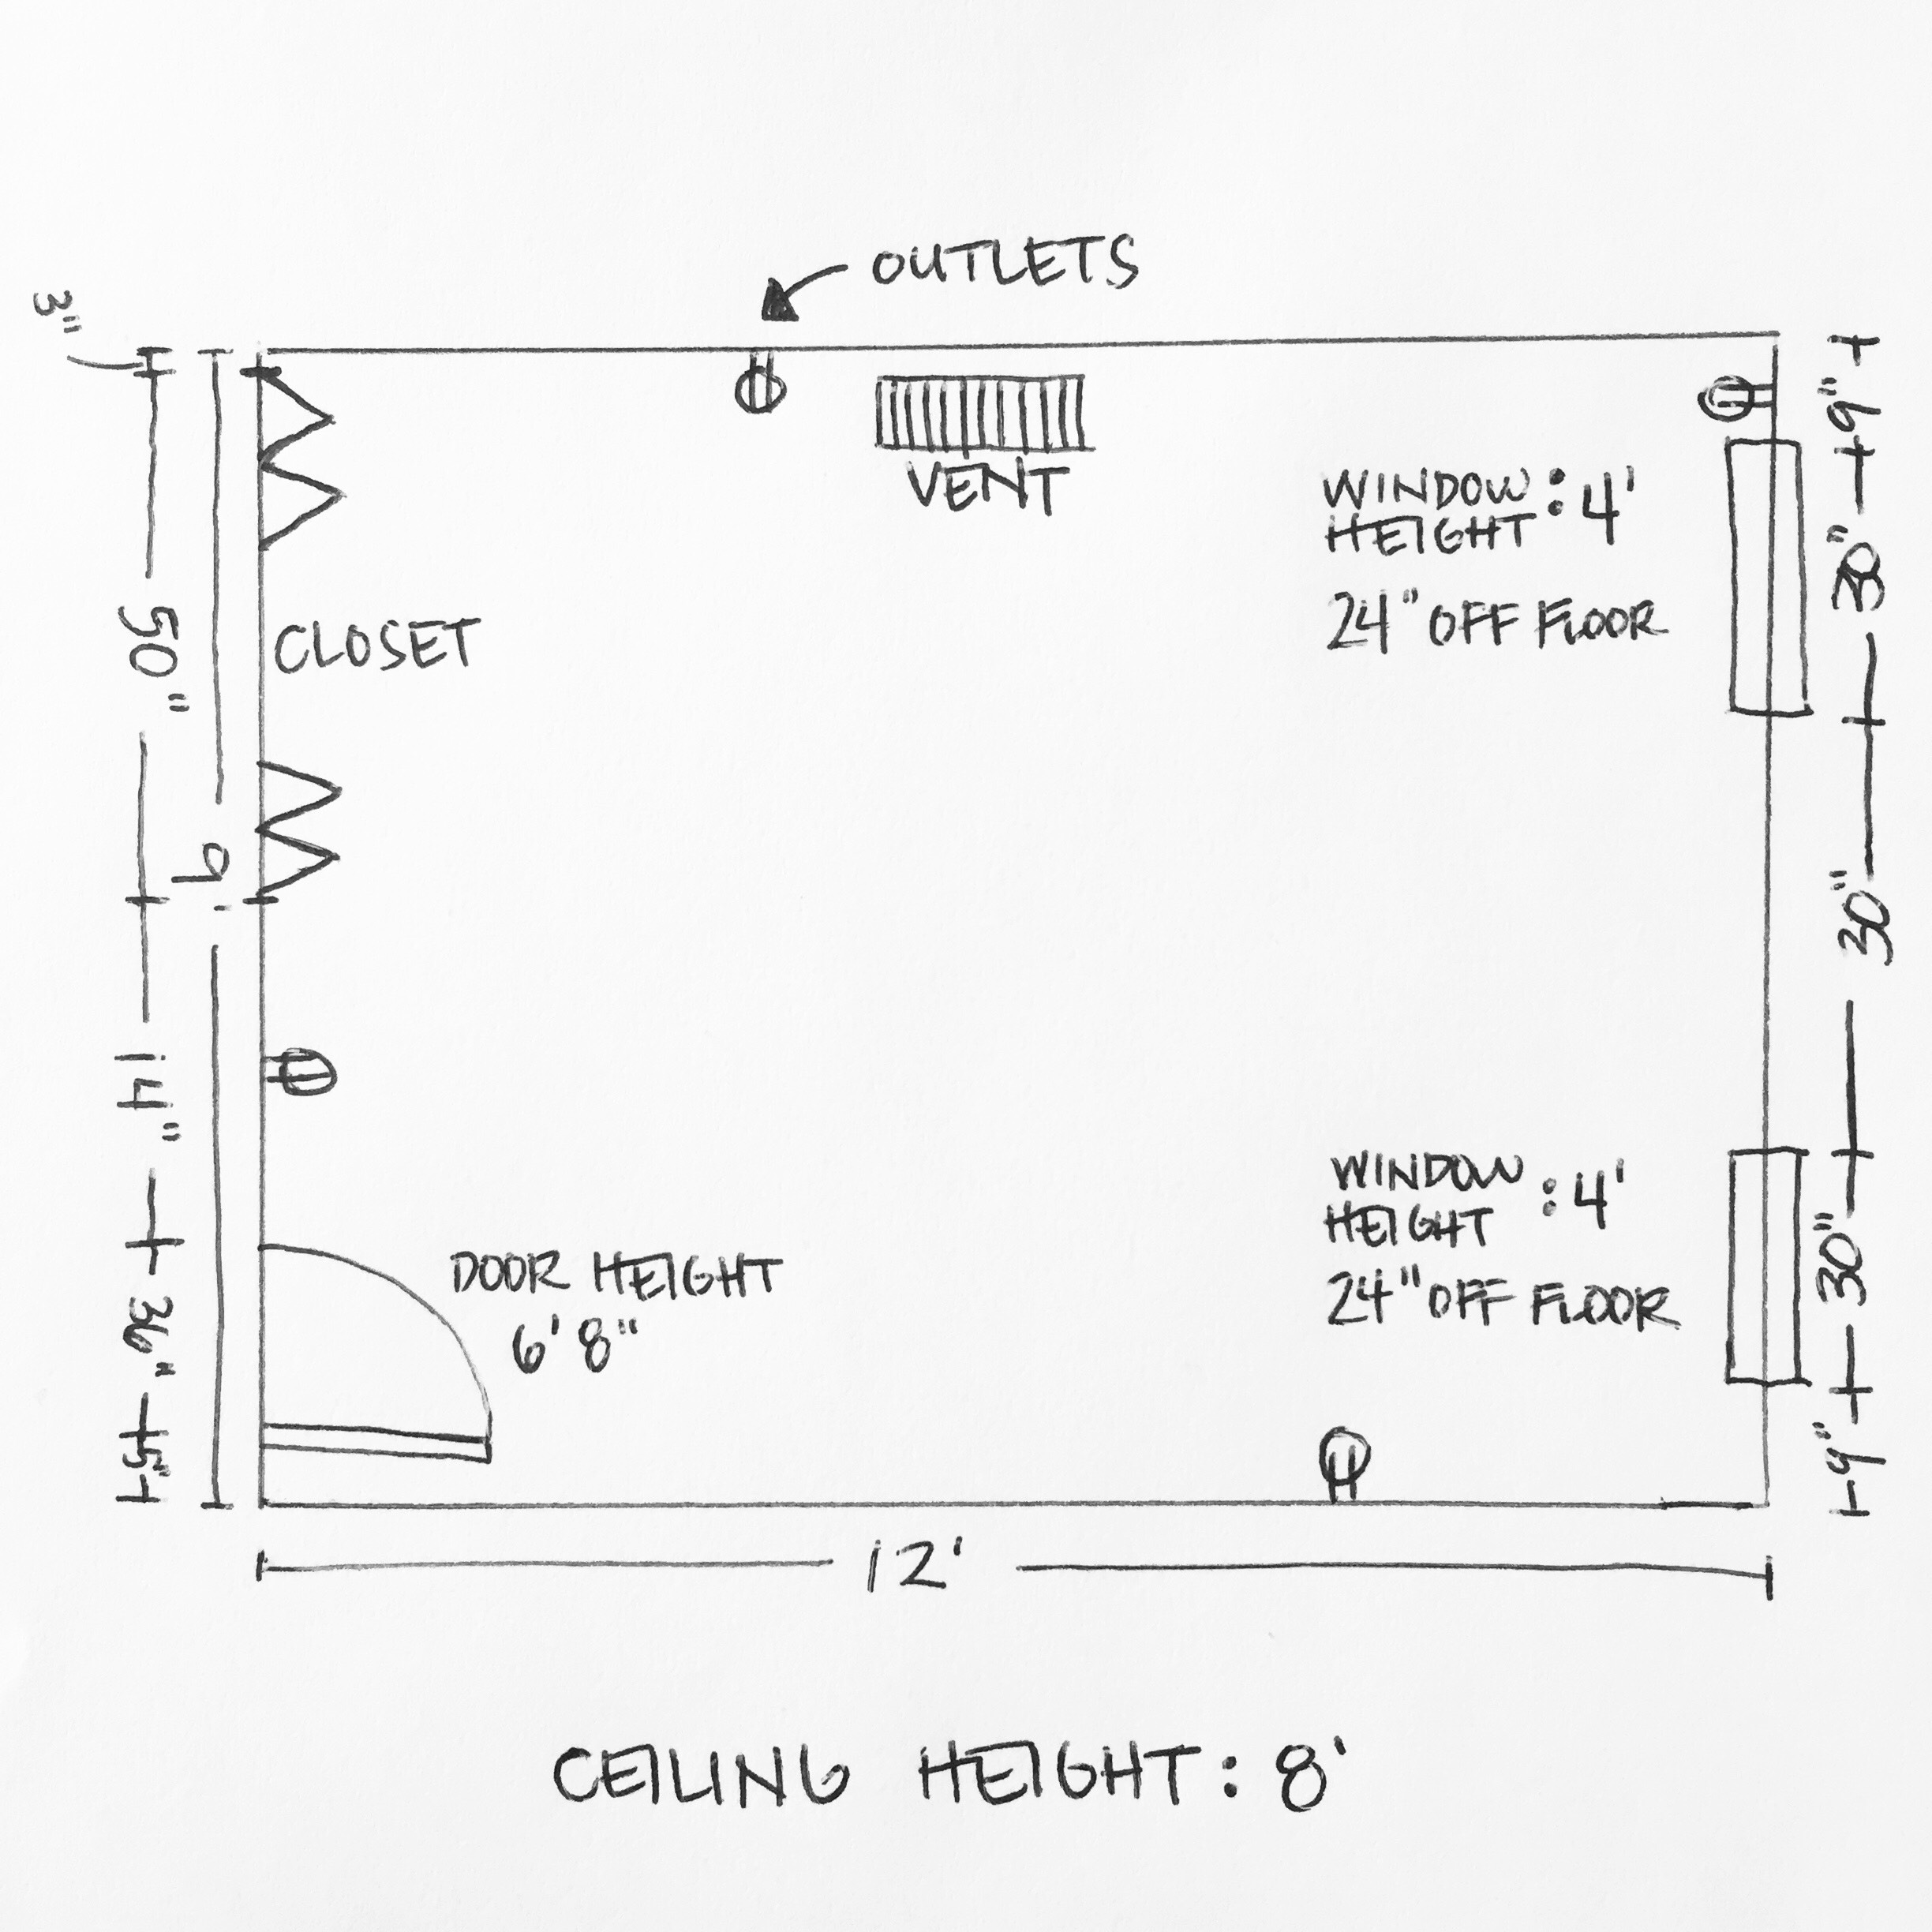 floor-plan-sketch.jpg